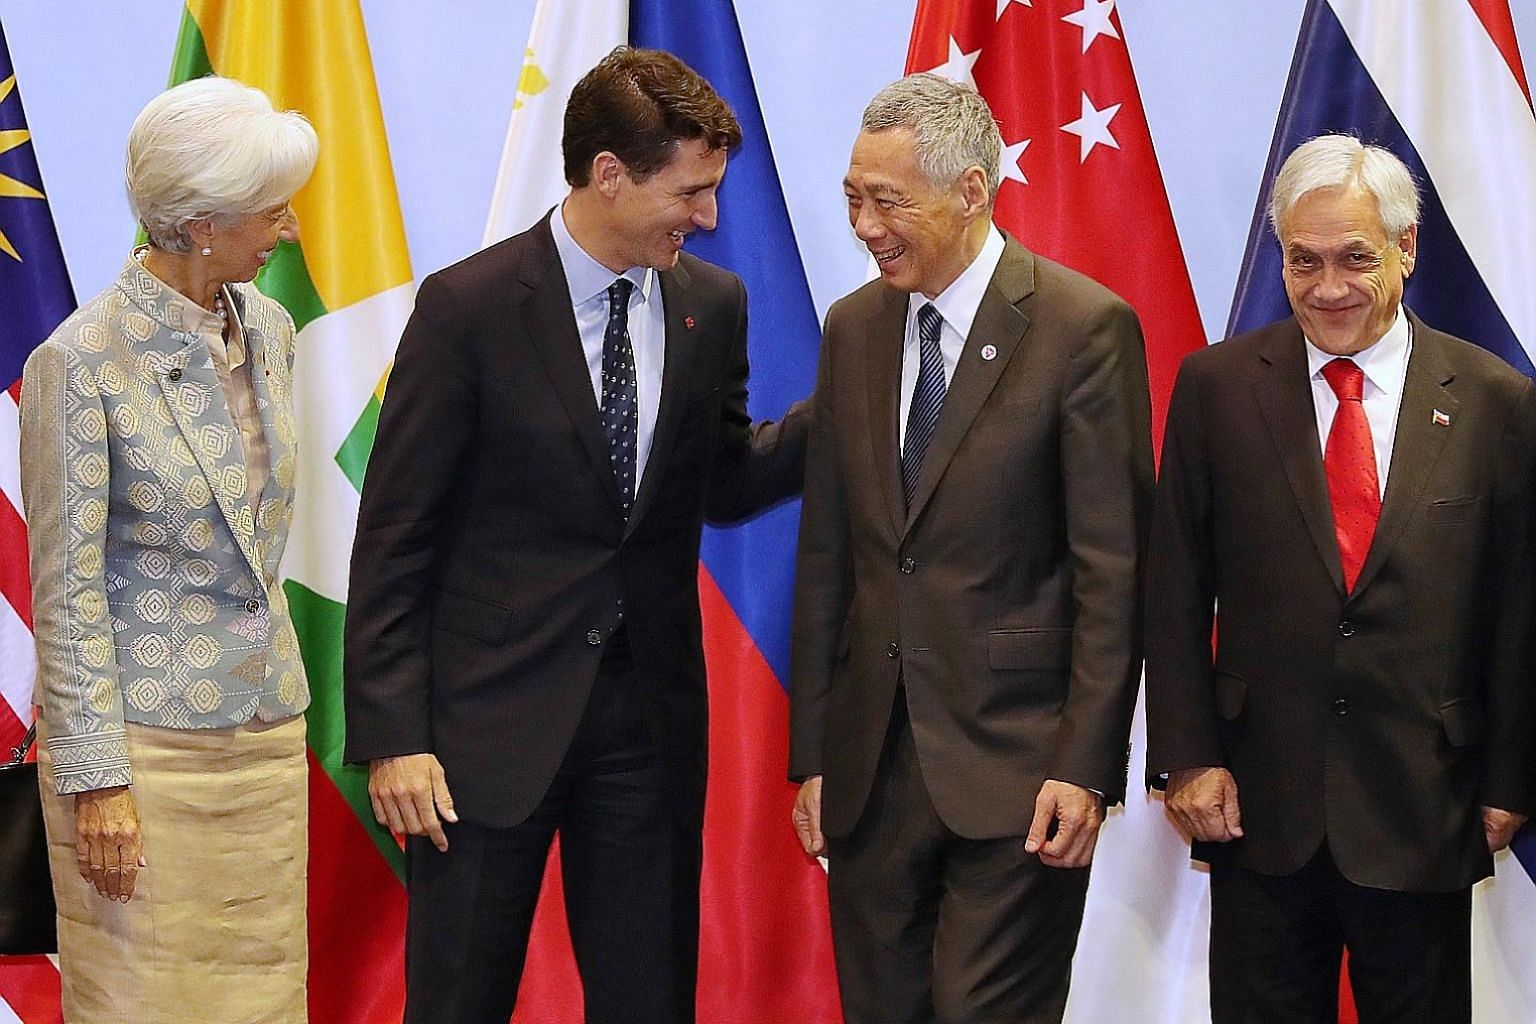 Prime Minister Lee Hsien Loong with (from left) IMF chief Christine Lagarde, Canadian Prime Minister Justin Trudeau and Chilean President Sebastian Pinera before the leaders headed for a working lunch yesterday.